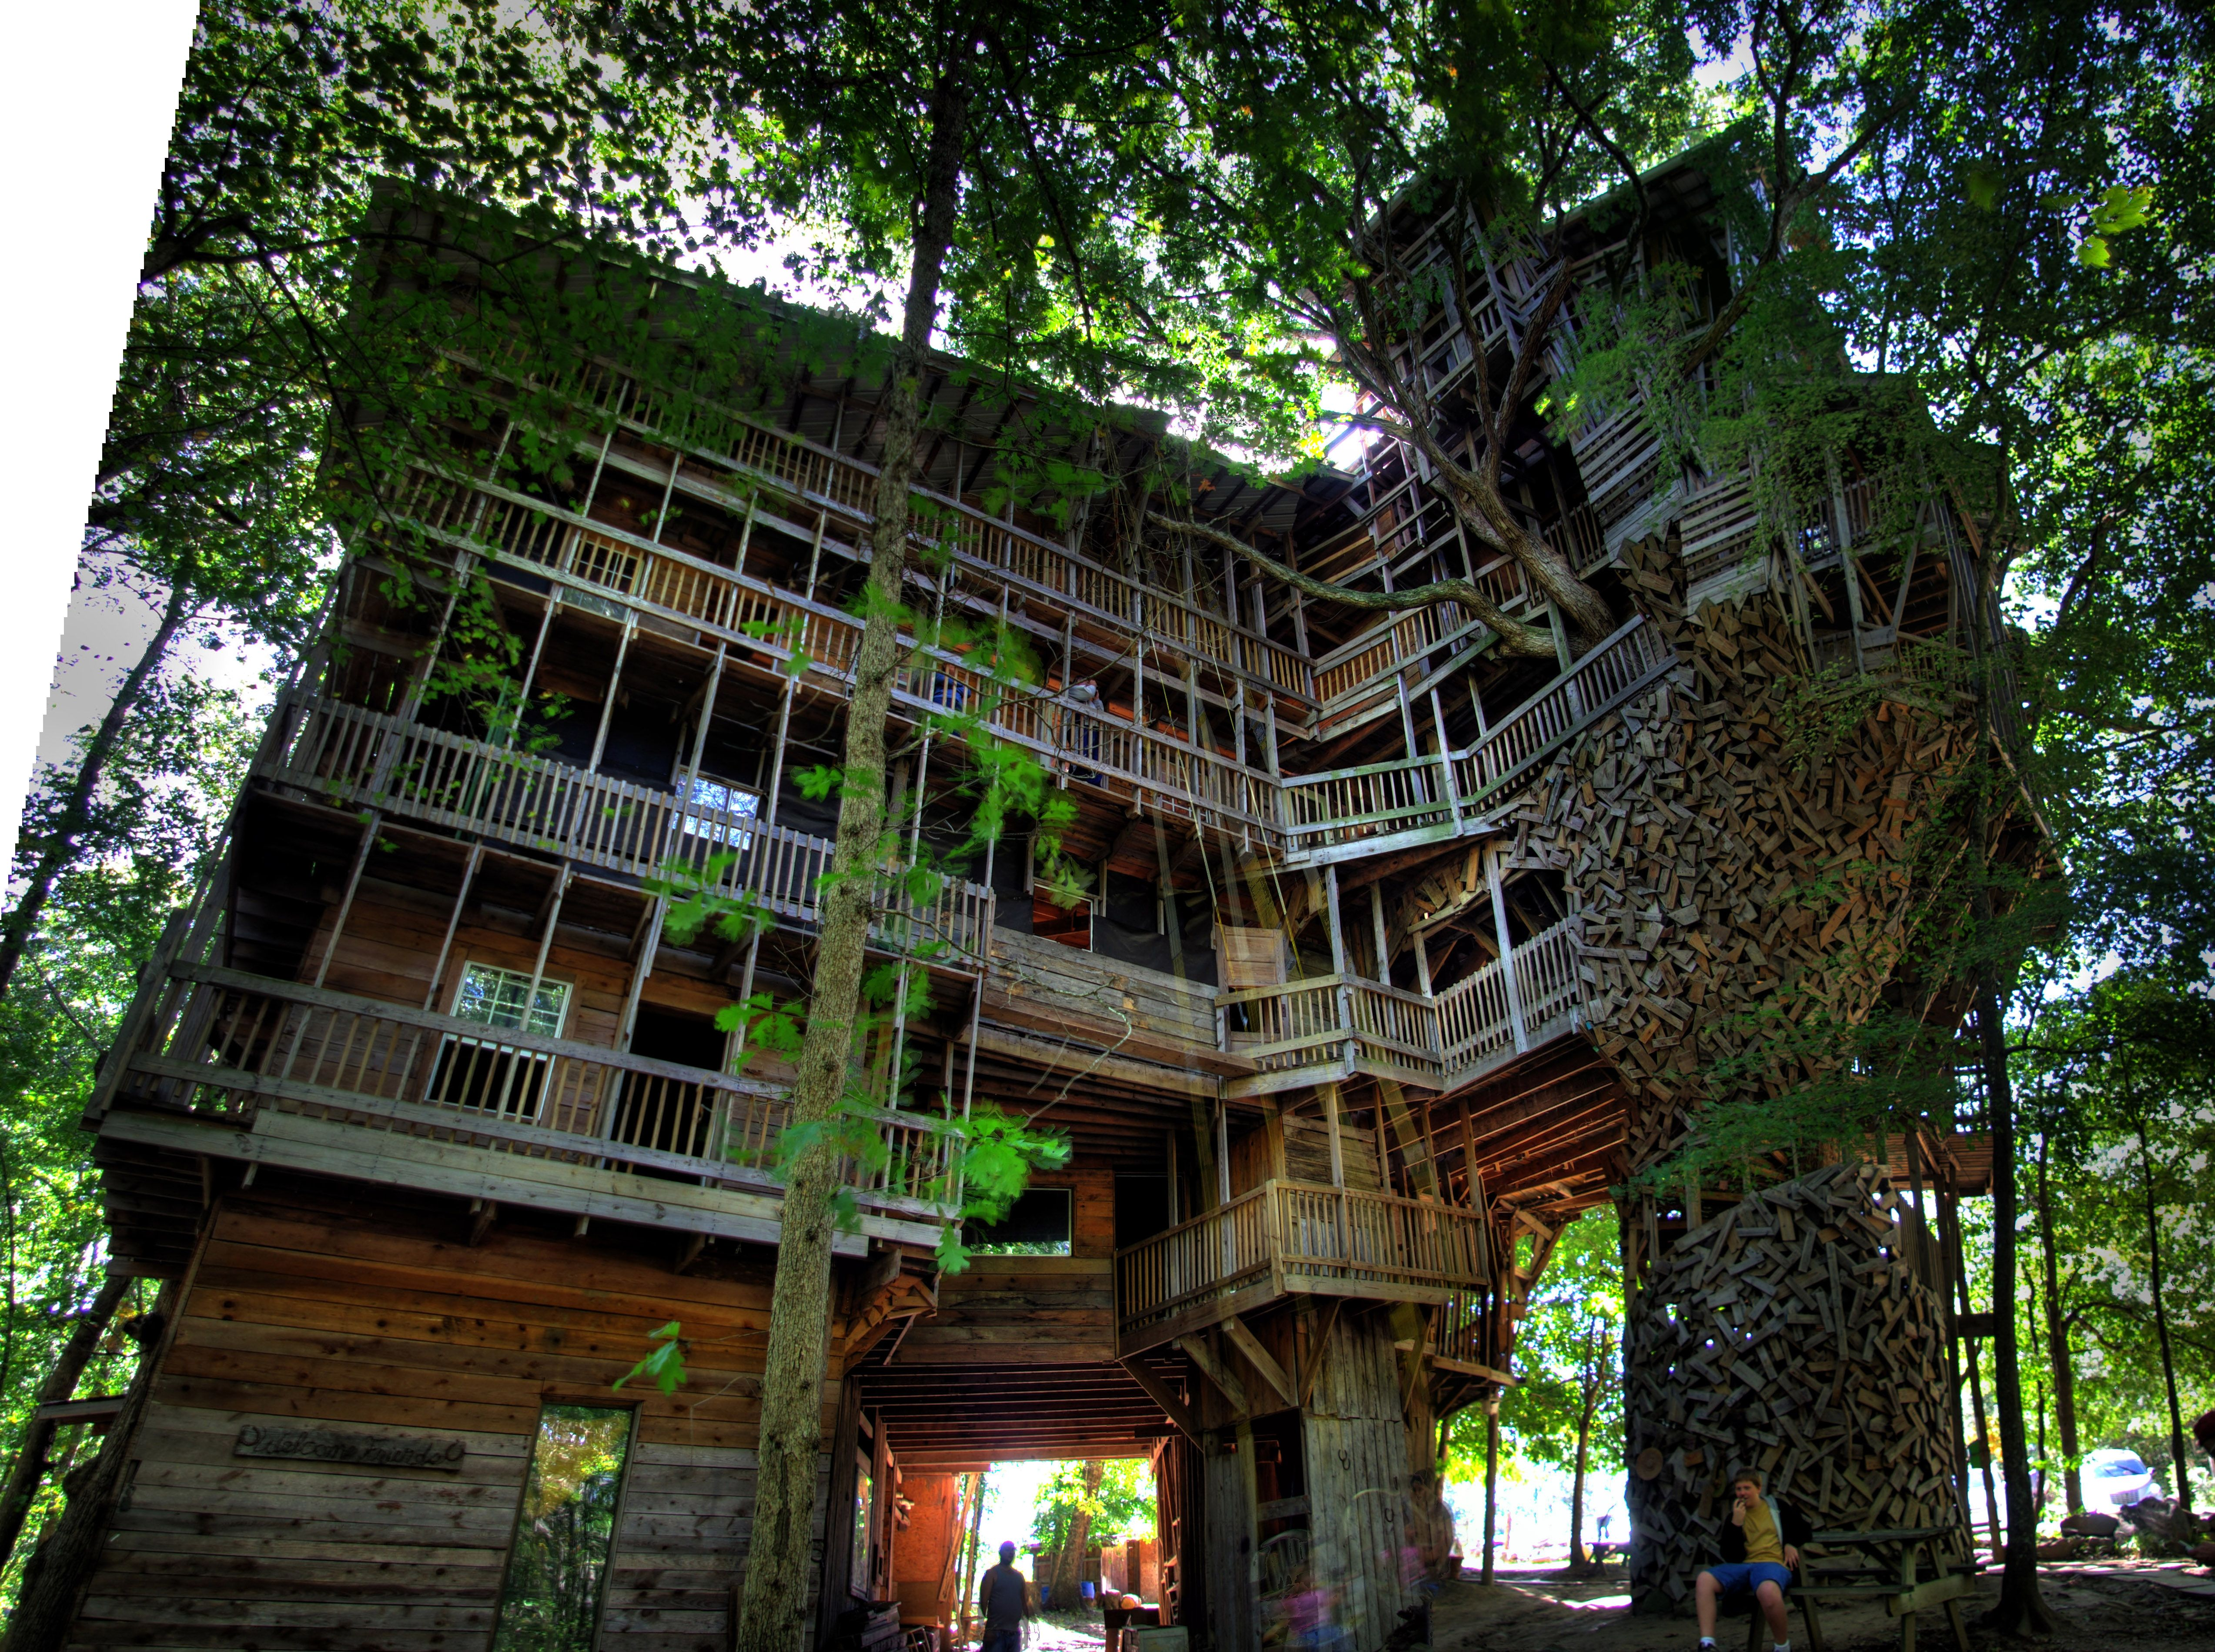 the worlds largest tree house the ministers house in crossville tennessee the largest tree house in the world the ministers house measures over 97